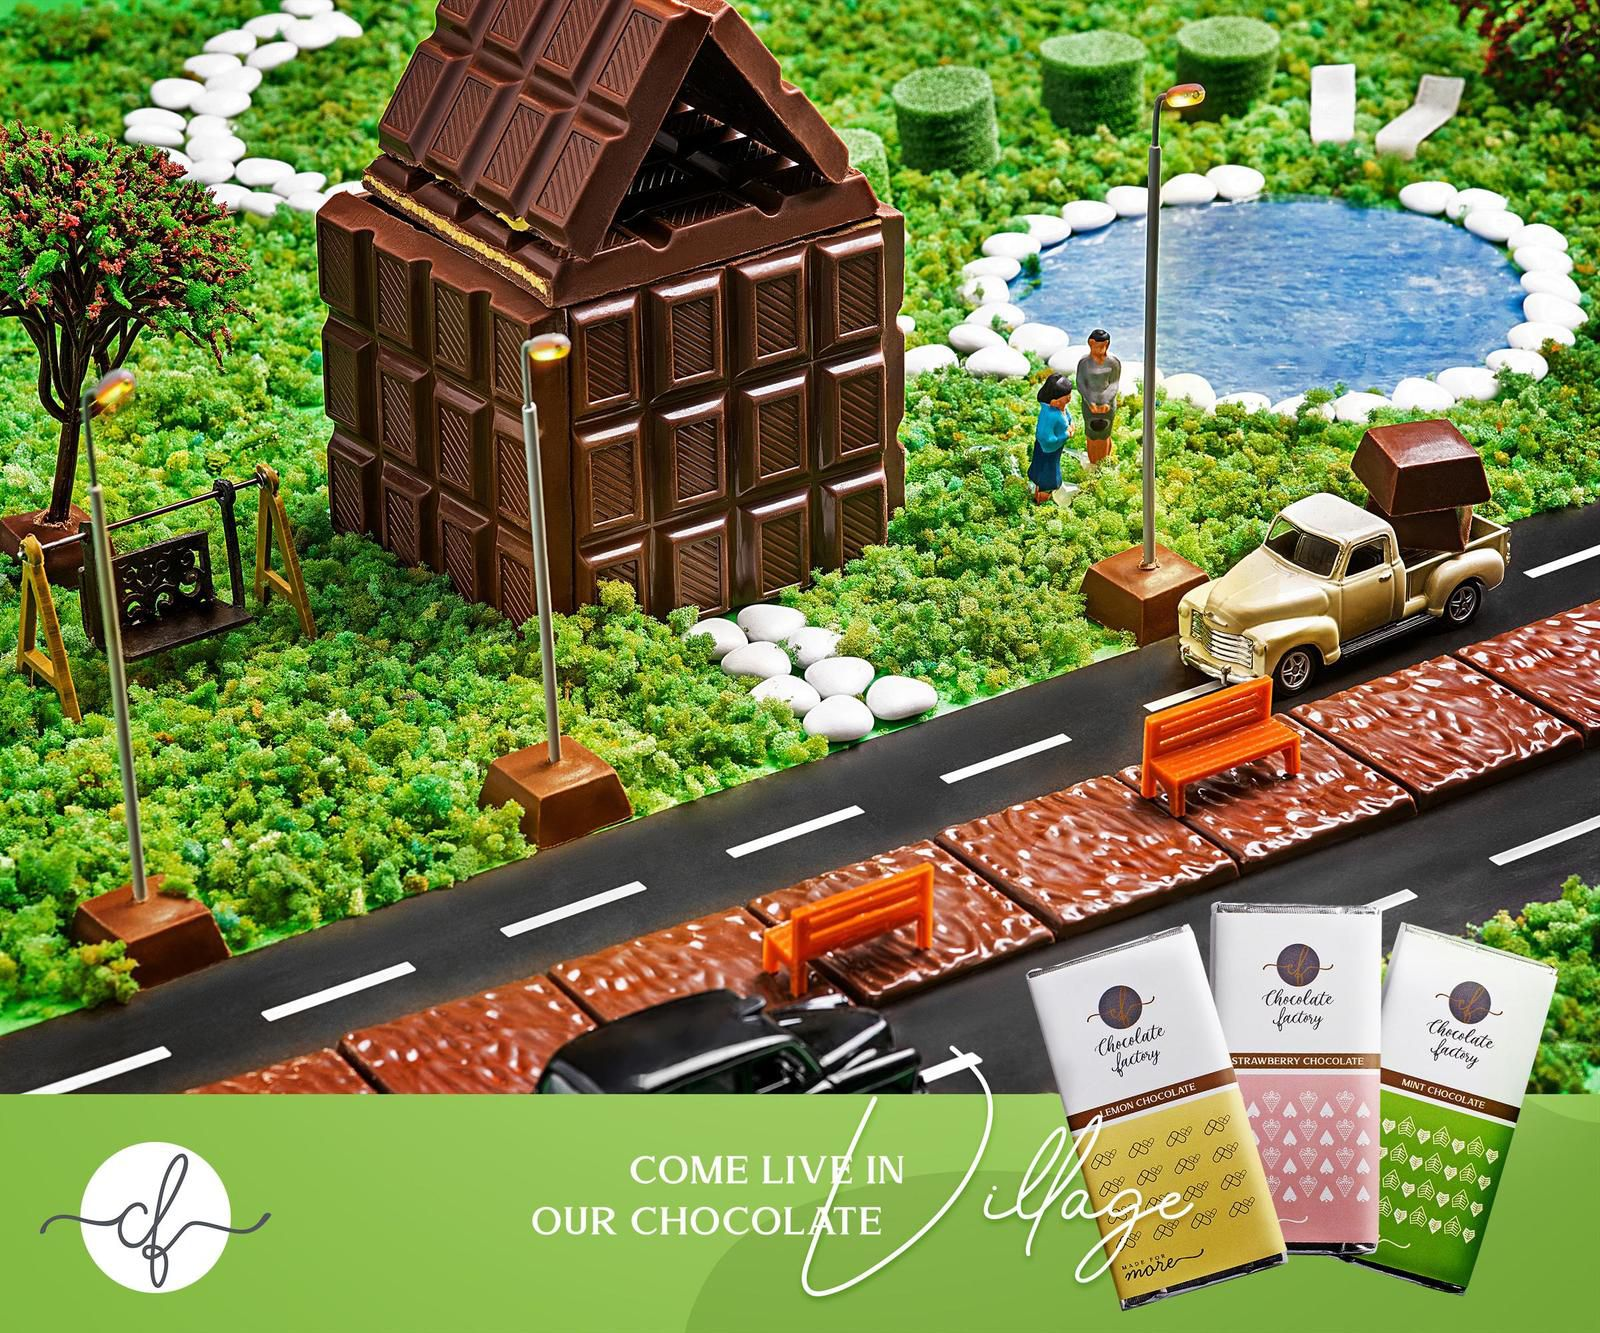 """Chocolate Factory : """"Come in live in our chocolate"""" I Agence : Artbox Studios, Le Caire, Egypte (juillet 2020)"""